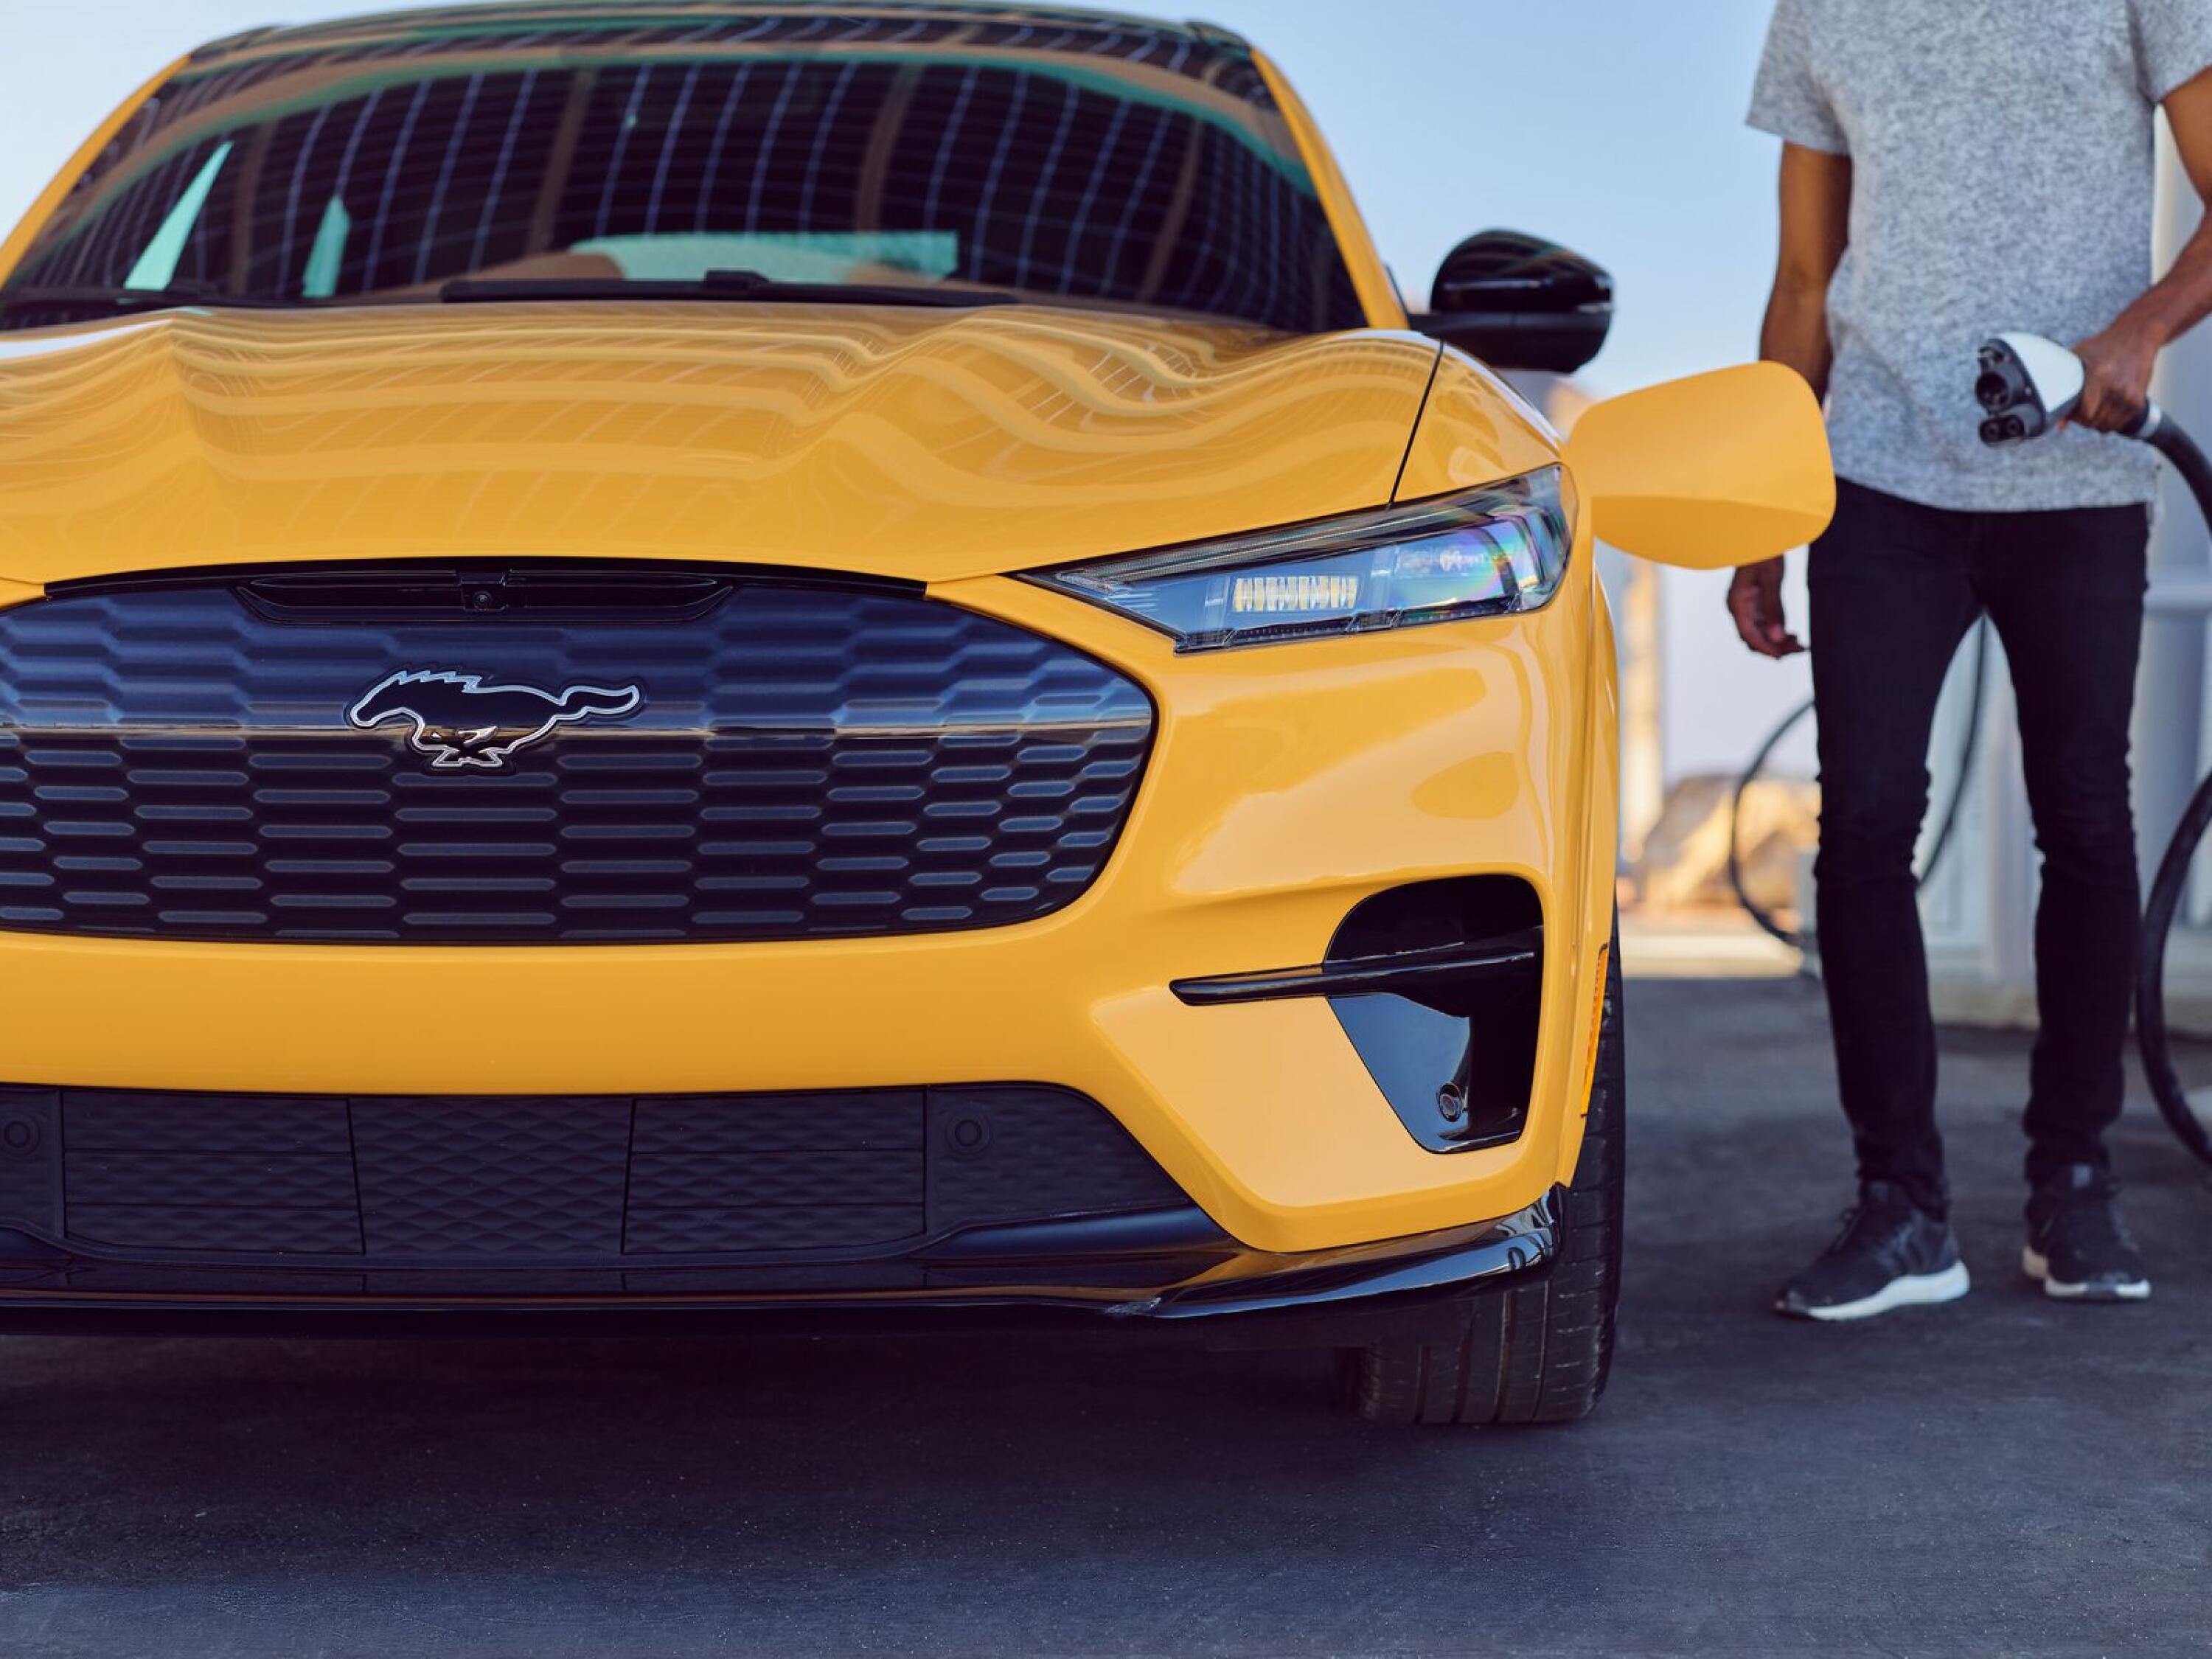 Electric pony: 2021 Mustang Mach-E GT is ready for customer deliveries, but it's not coming to South Africa